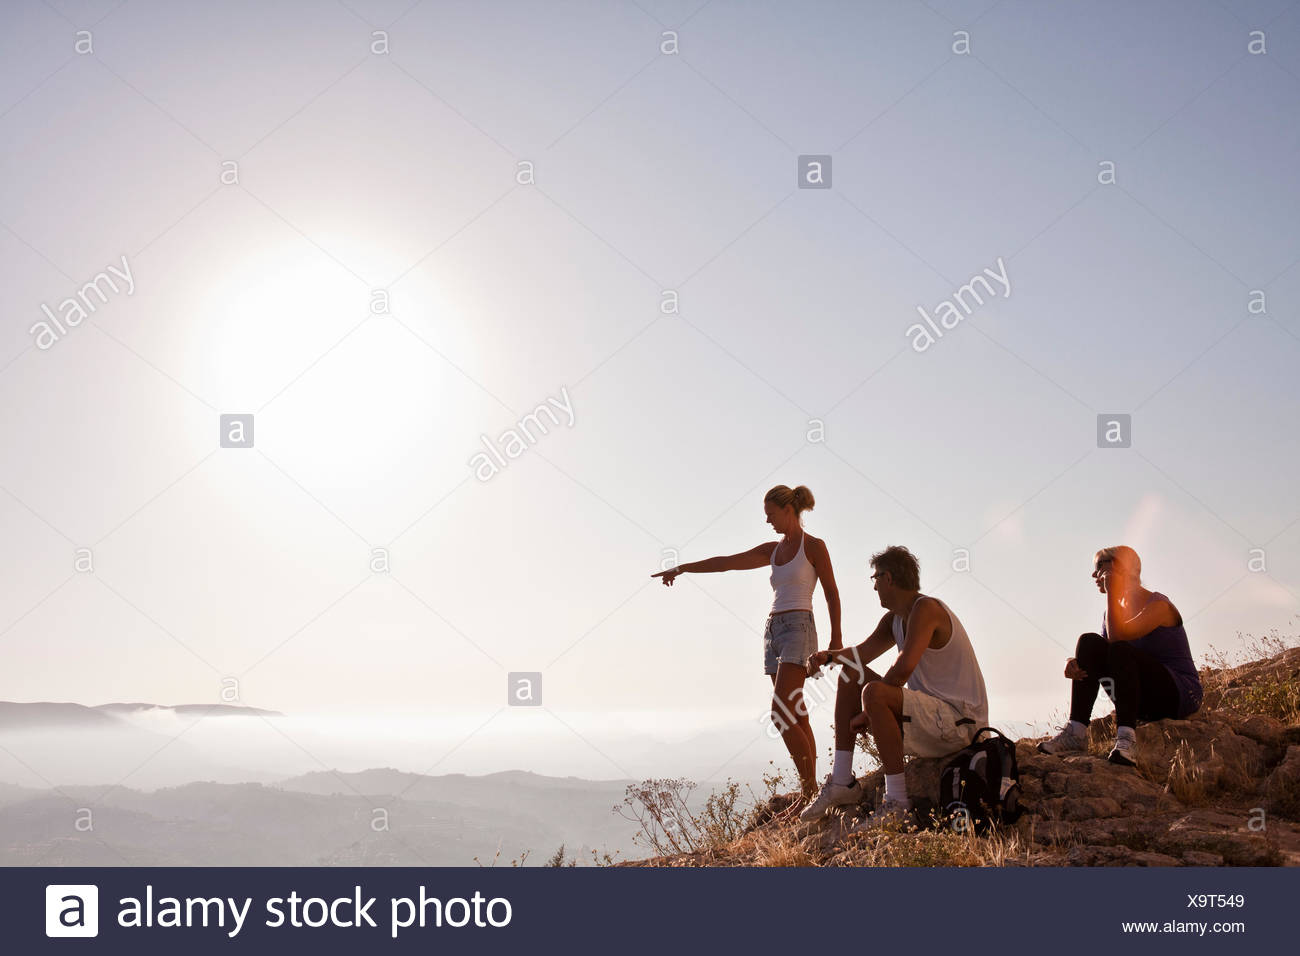 Spain, Alicante, Cocentaina, Tourists in mountains looking at view Stock Photo